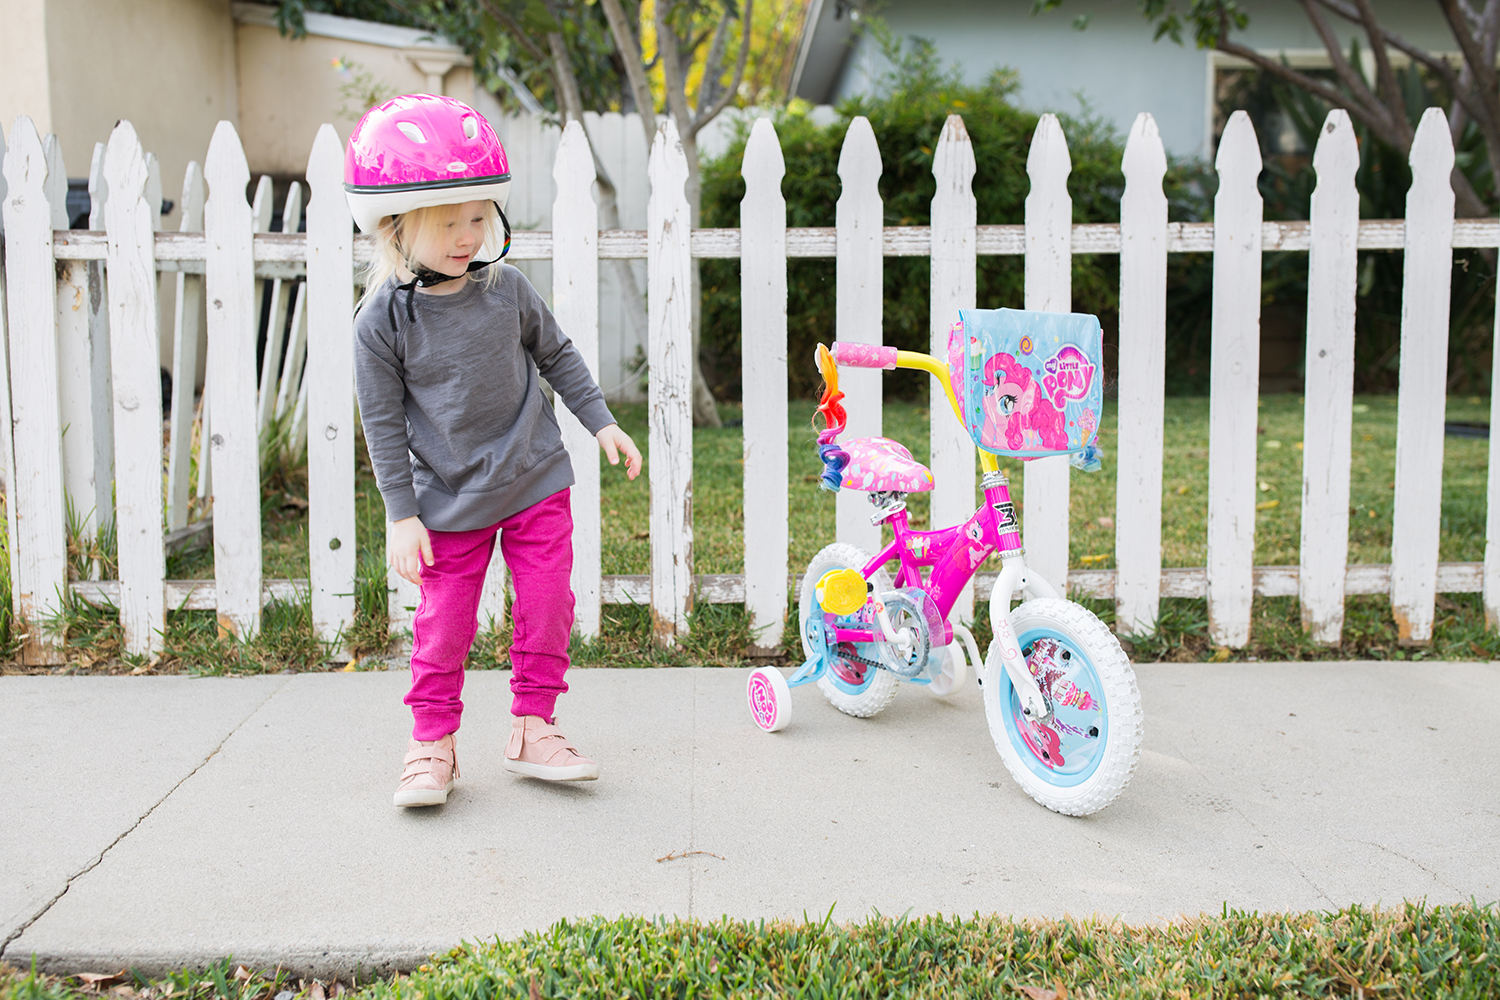 Training Wheels: How to teach riding a bike